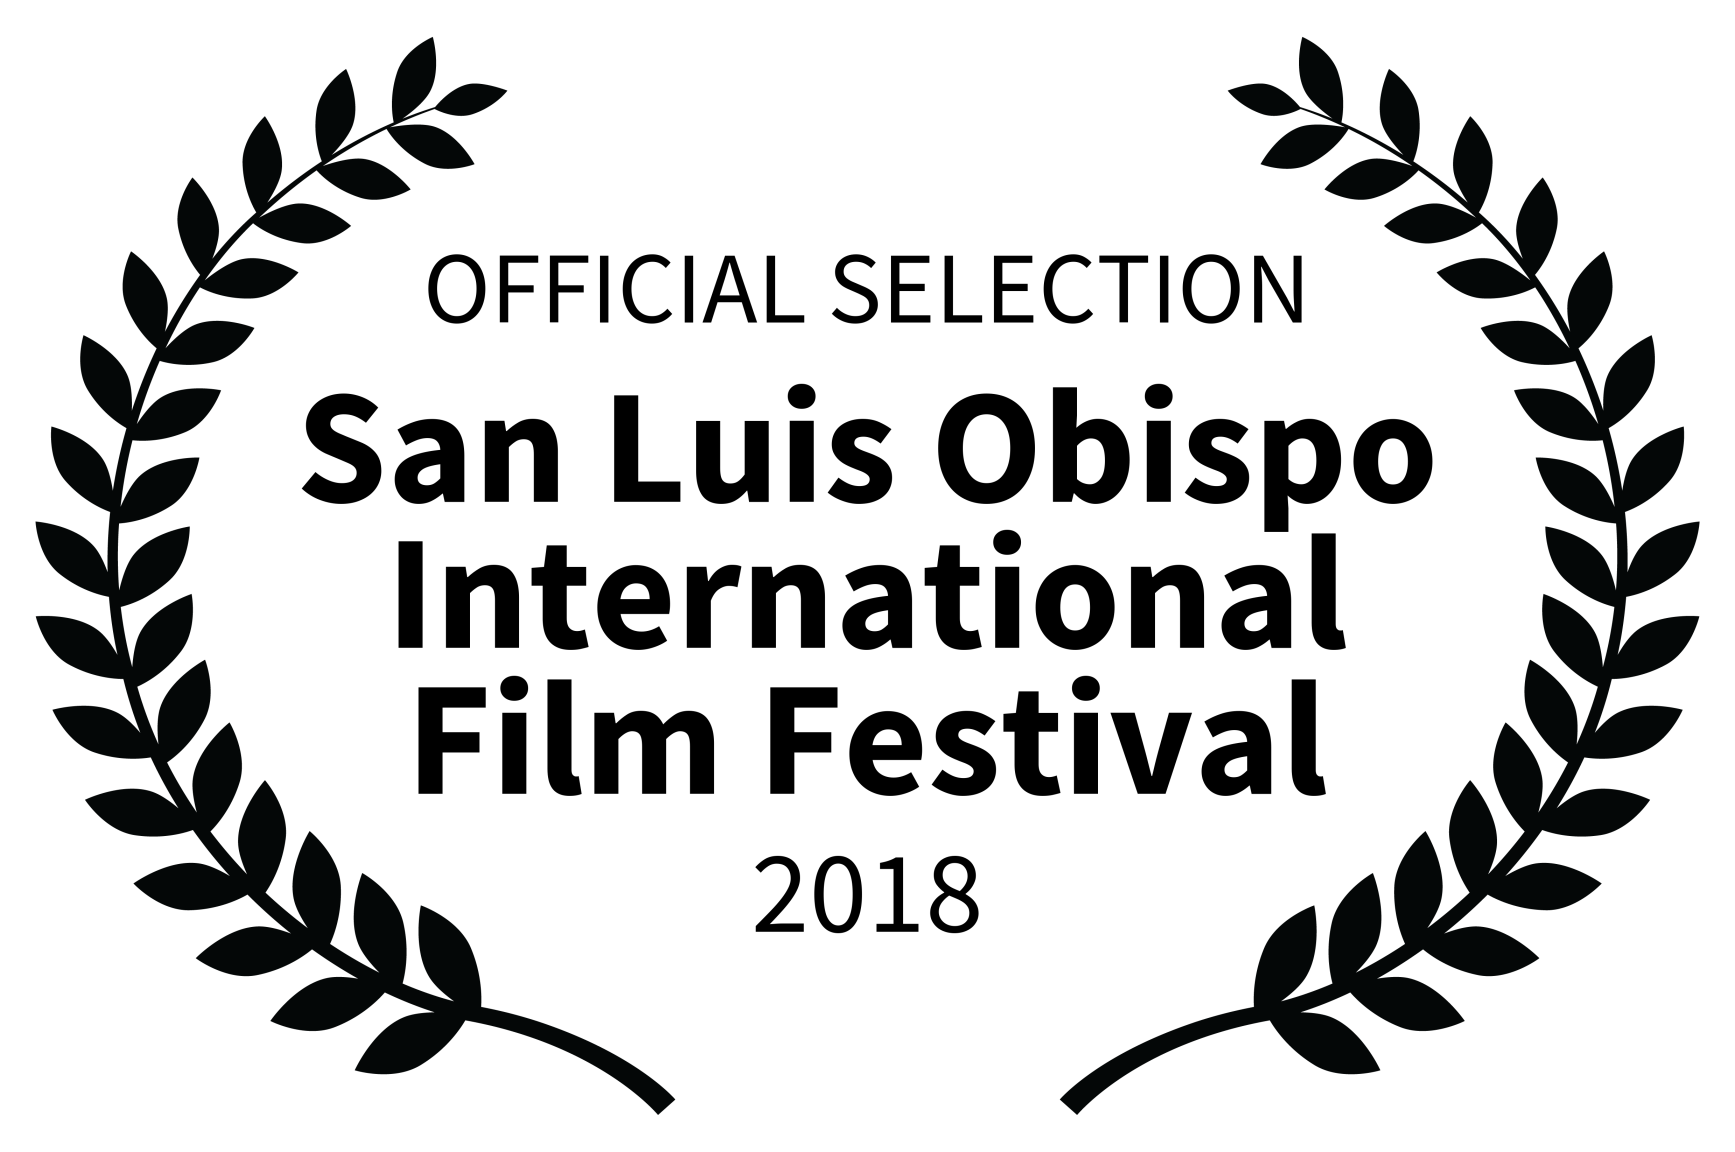 OFFICIAL SELECTION - San Luis Obispo Int